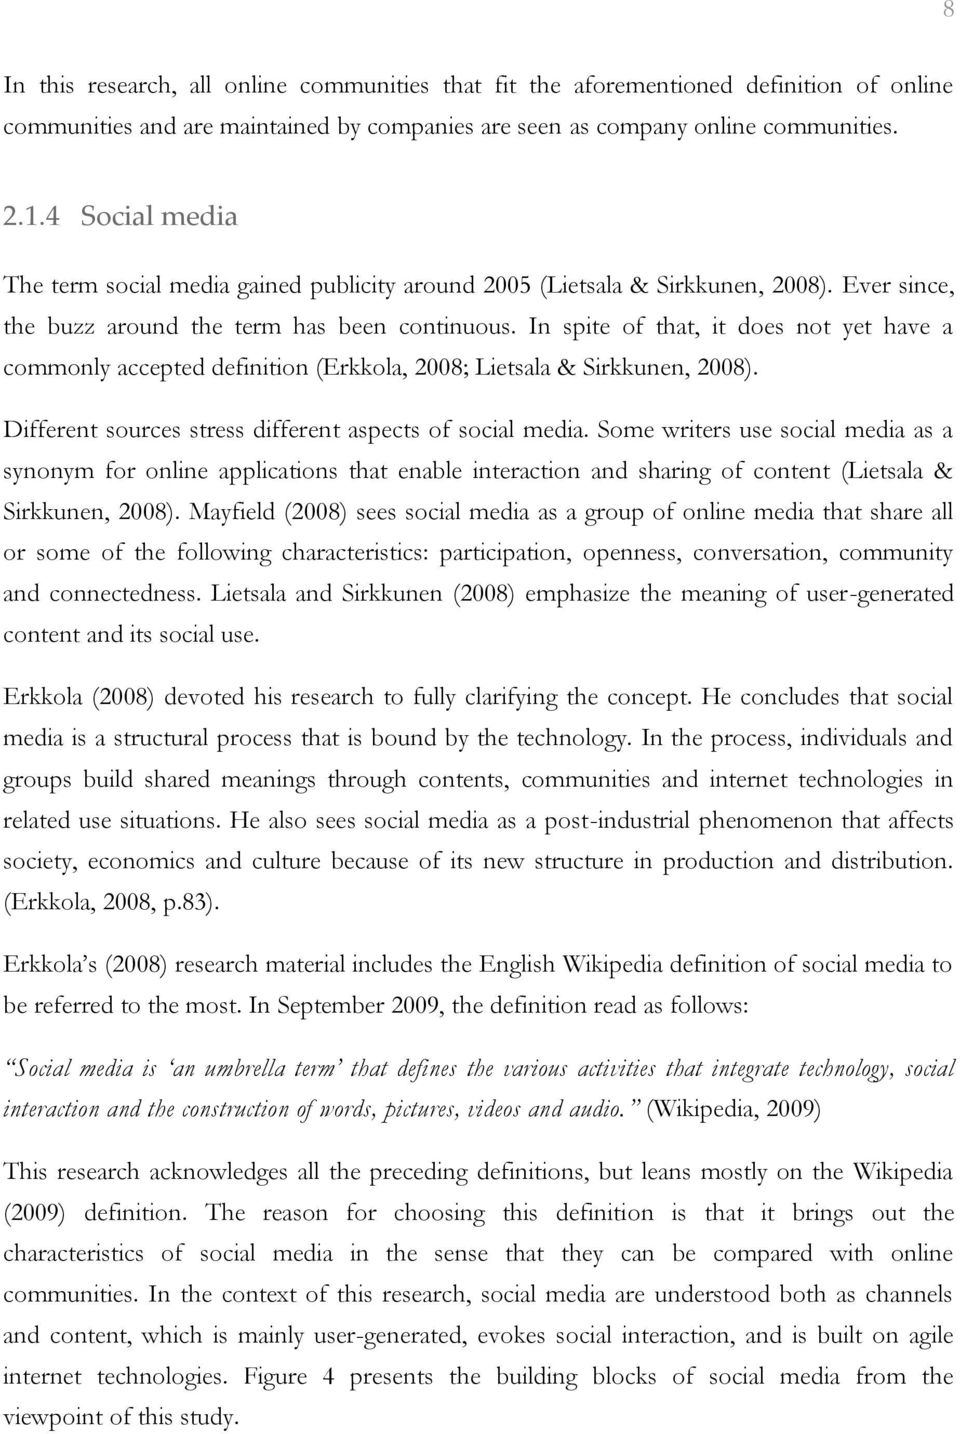 In spite of that, it does not yet have a commonly accepted definition (Erkkola, 2008; Lietsala & Sirkkunen, 2008). Different sources stress different aspects of social media.